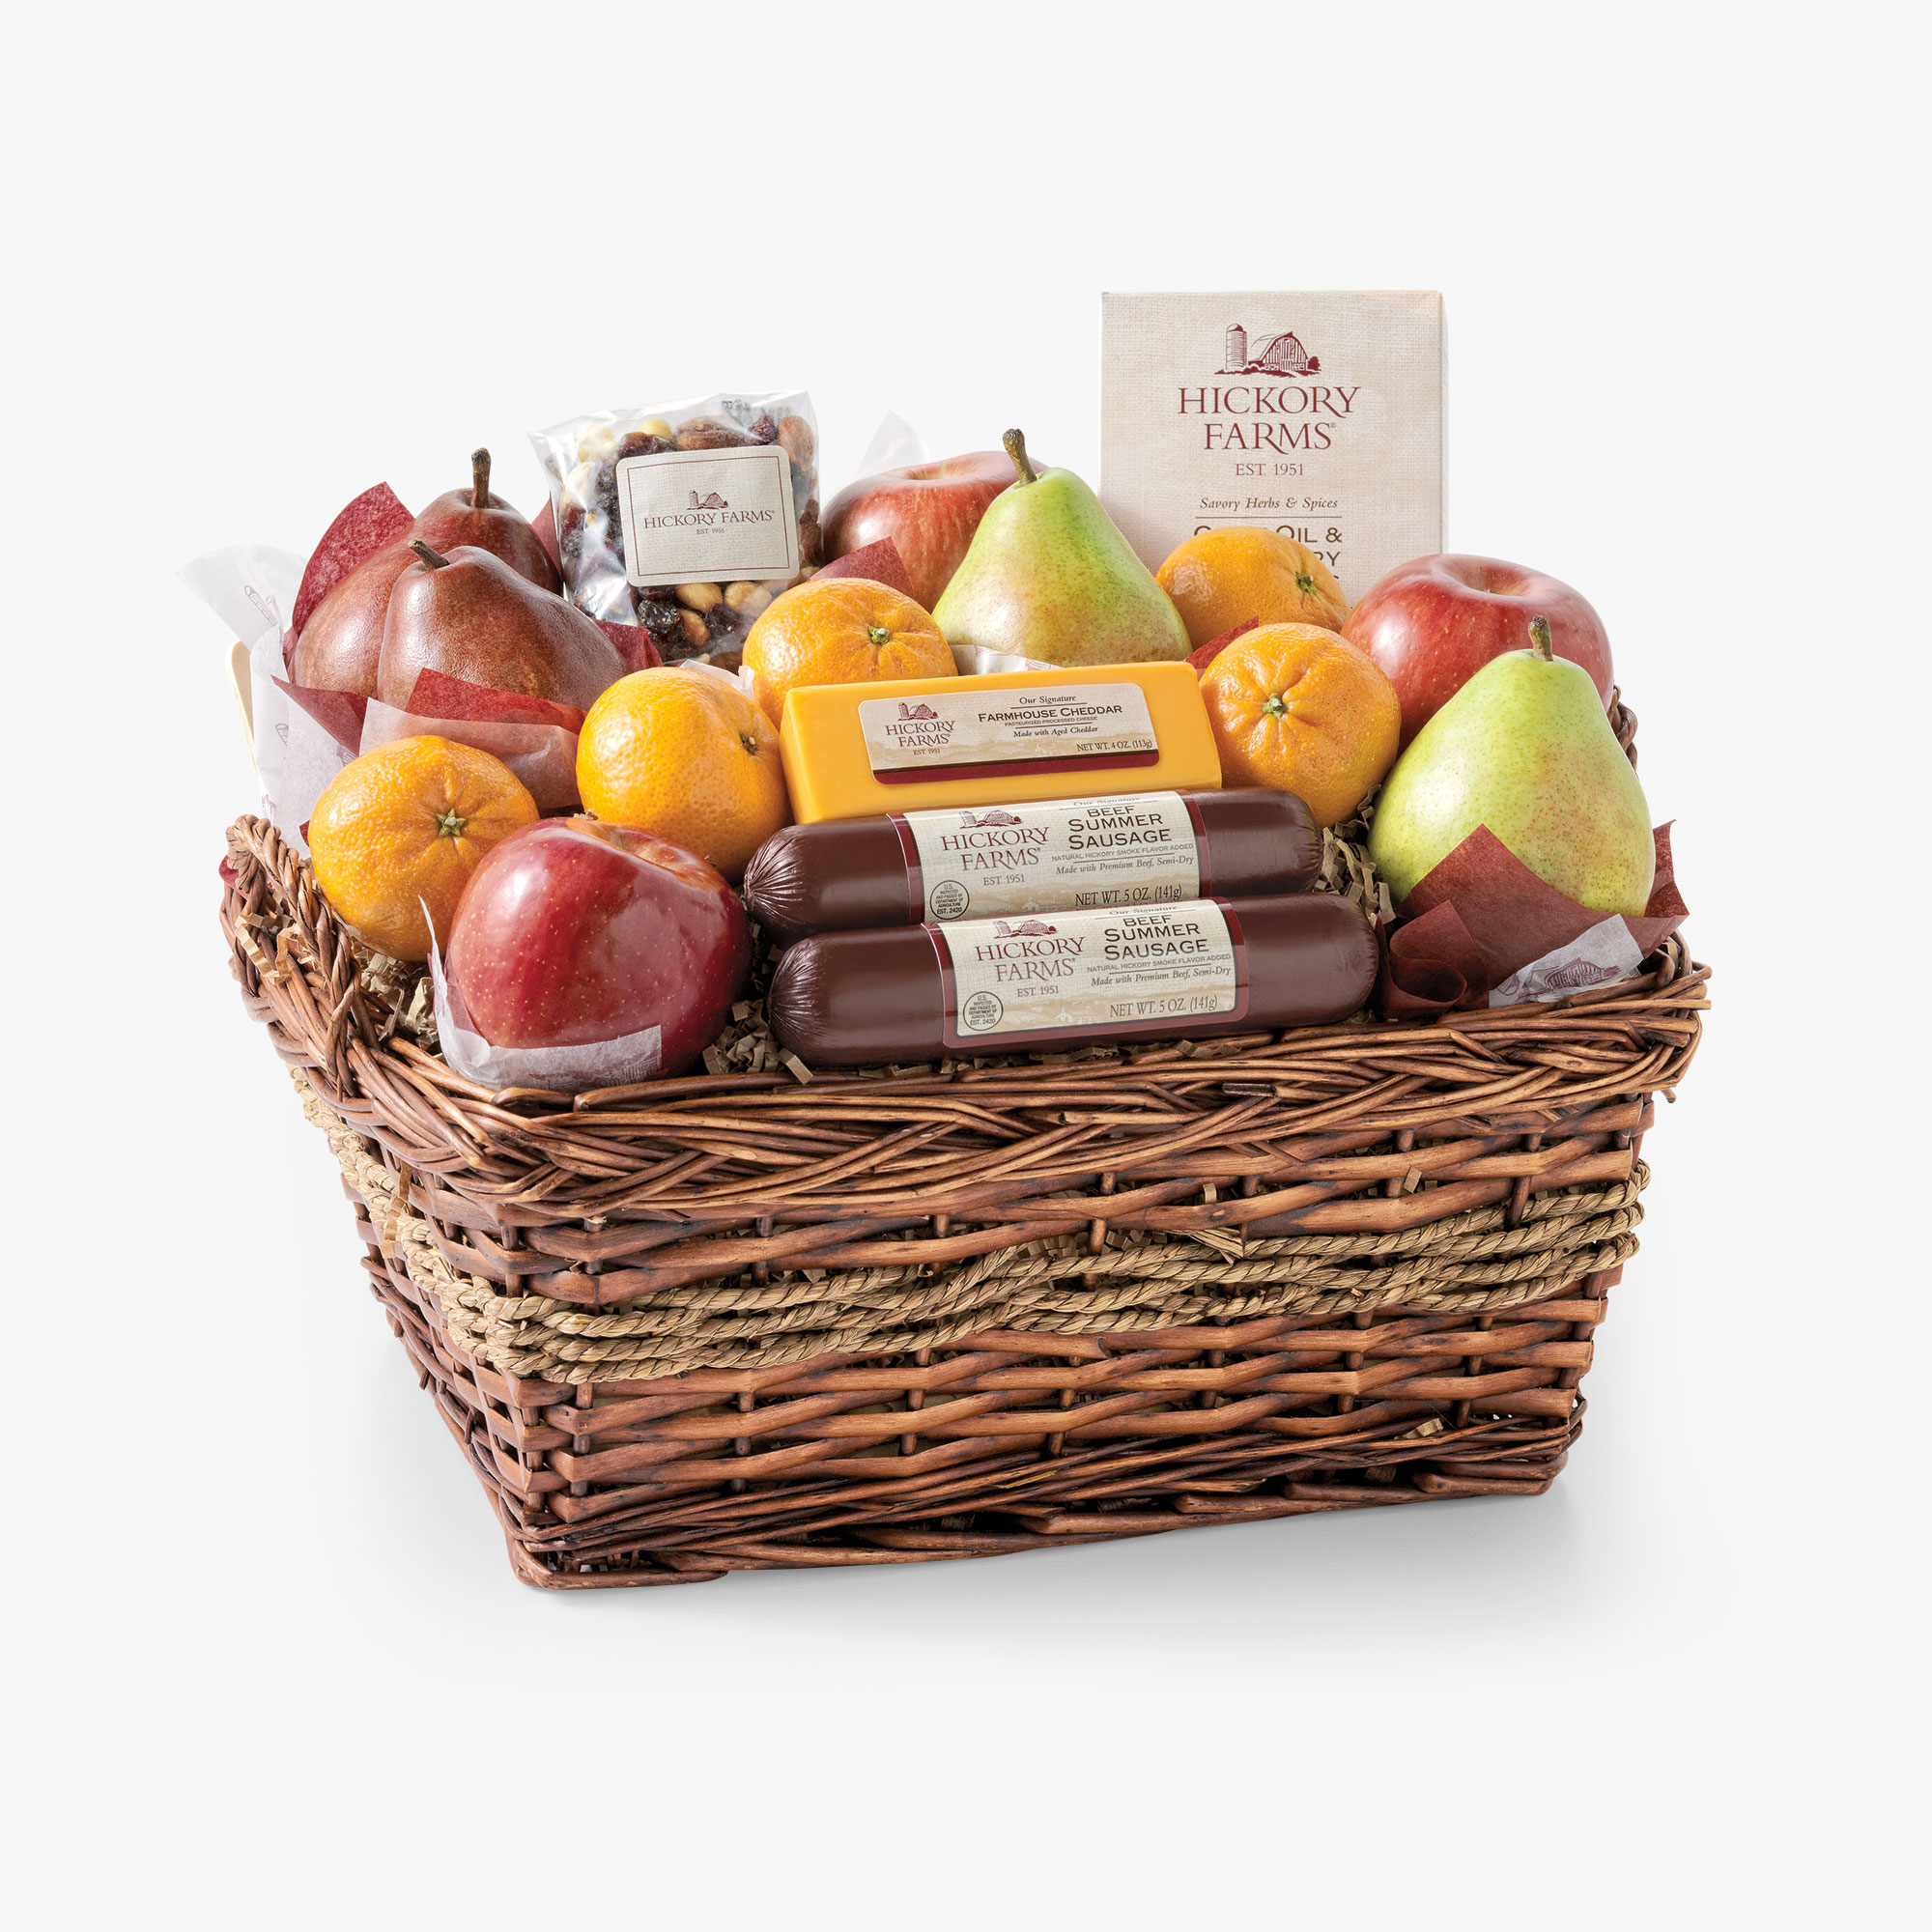 orchard s bounty gift basket gift purchase our wine gift baskets